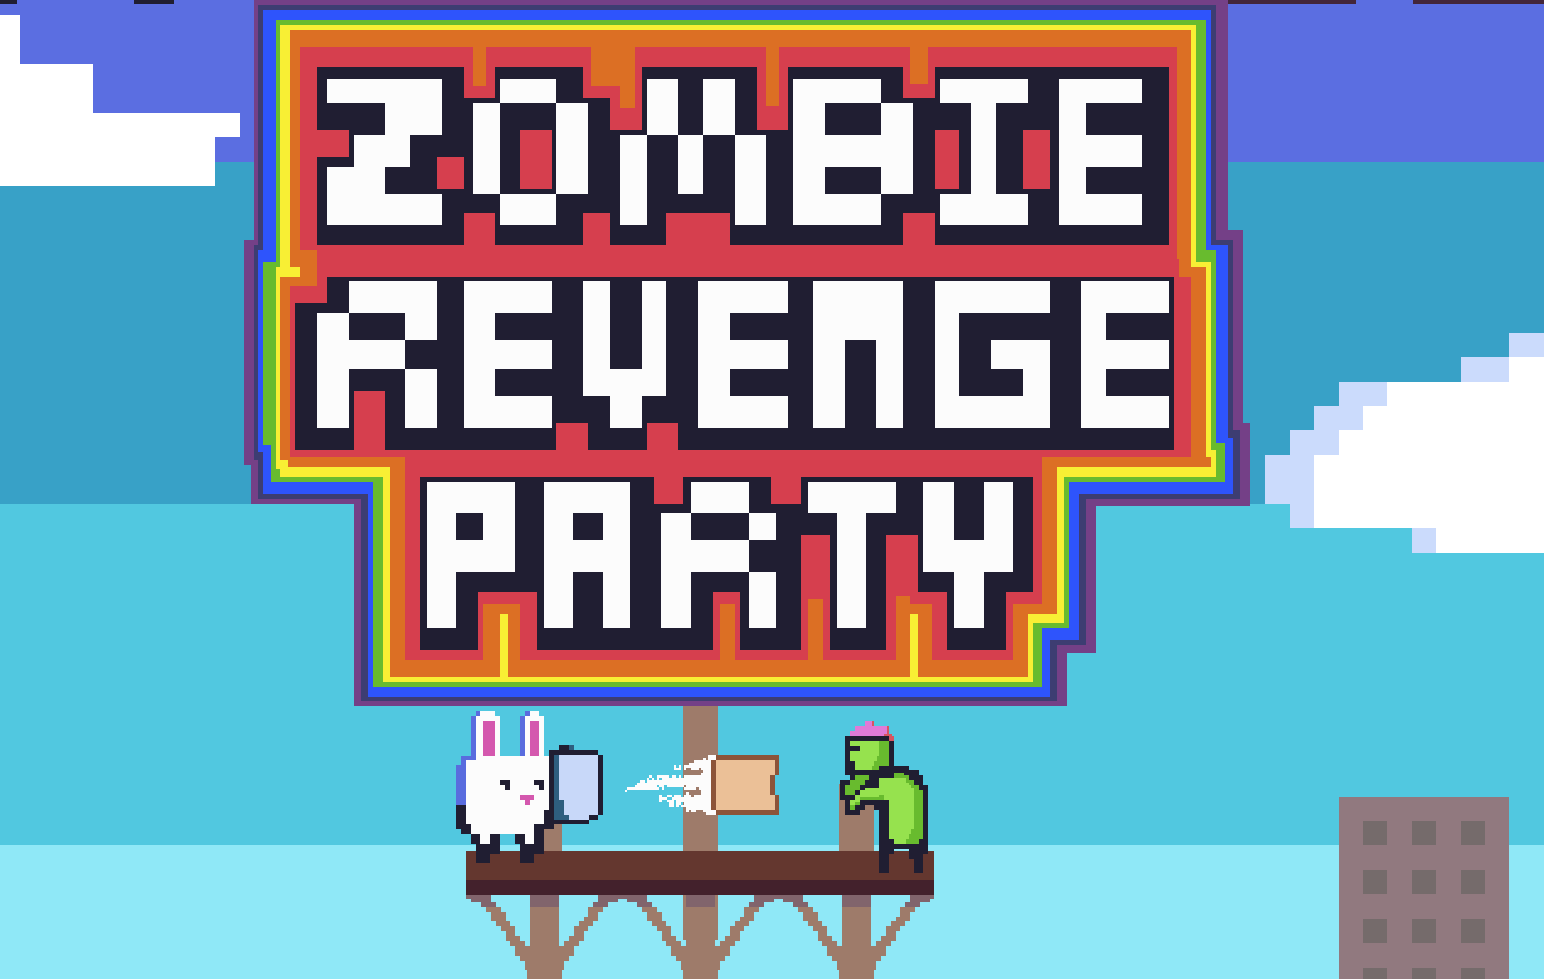 4539115_142959523532_ZOMBIEREVENGEPARTY.png